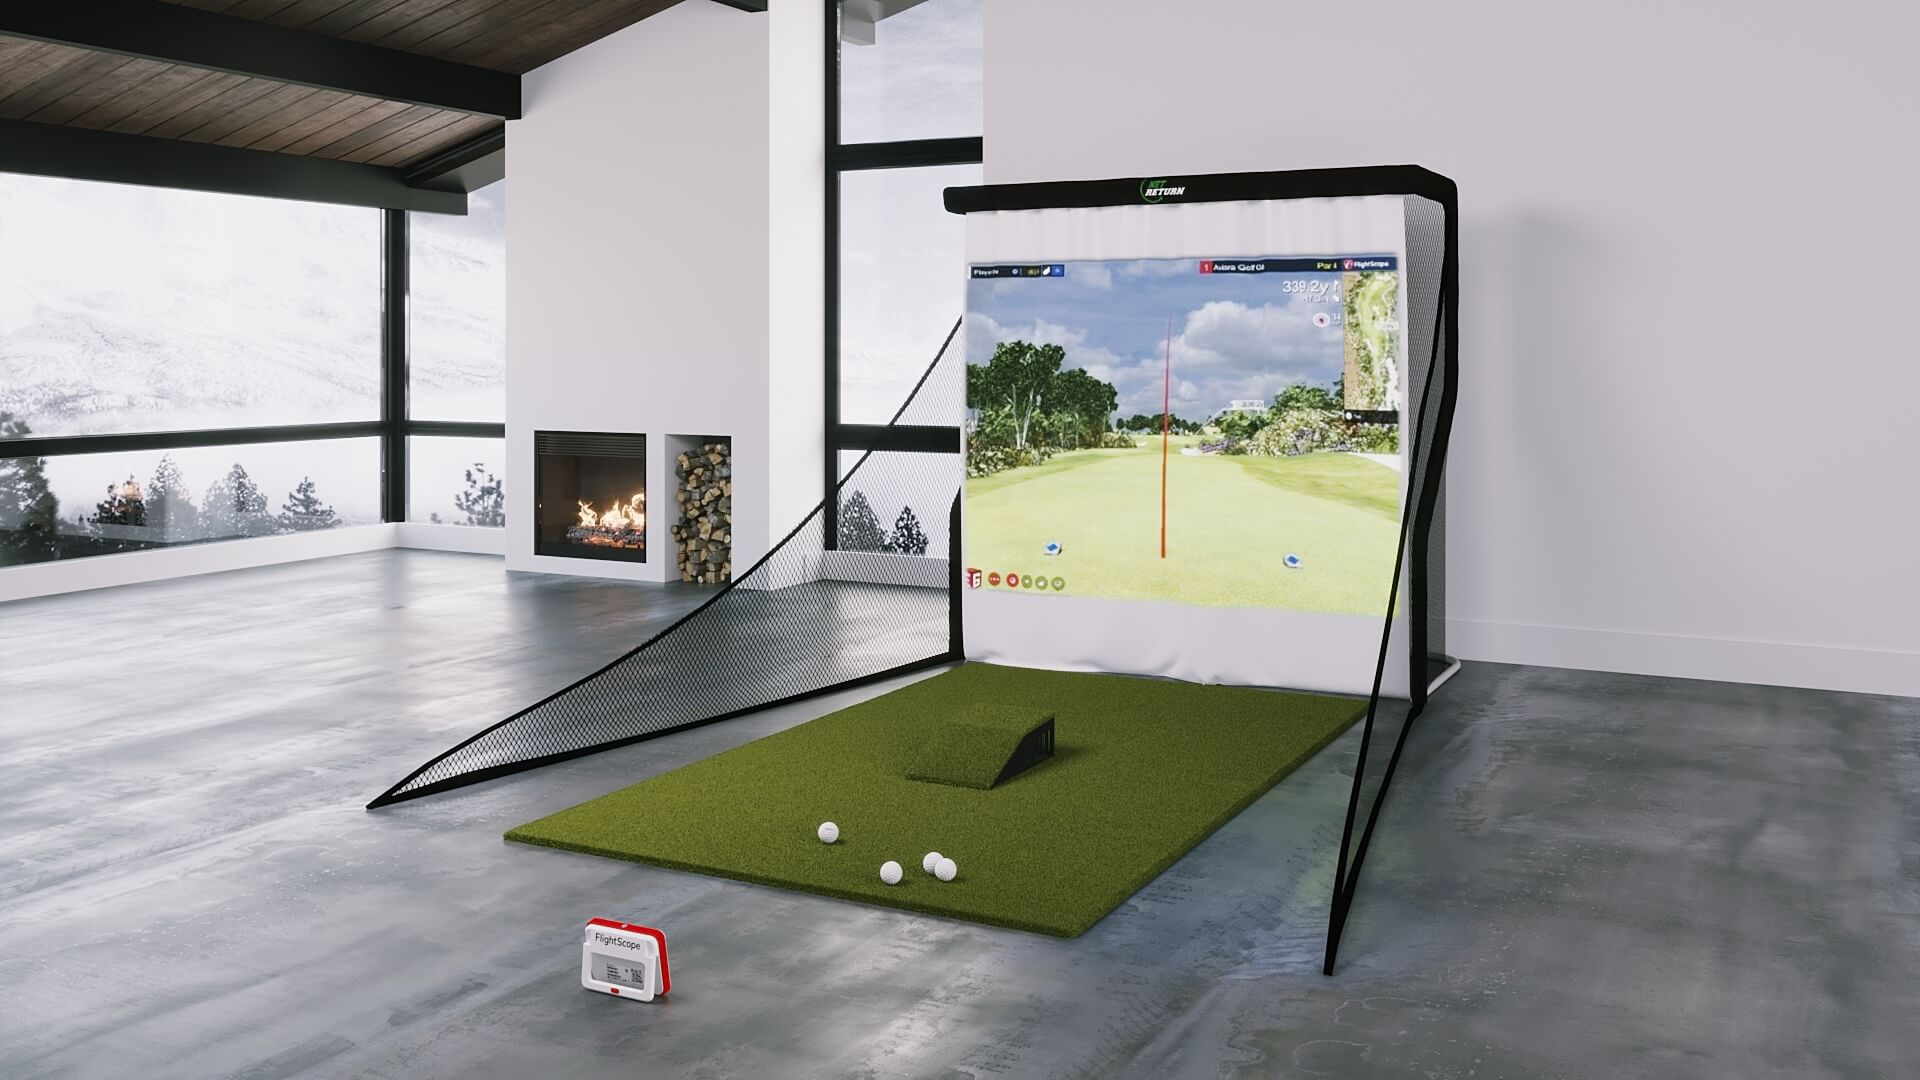 flightscope mevo plus bronze golf simulator package from shop indoor golf